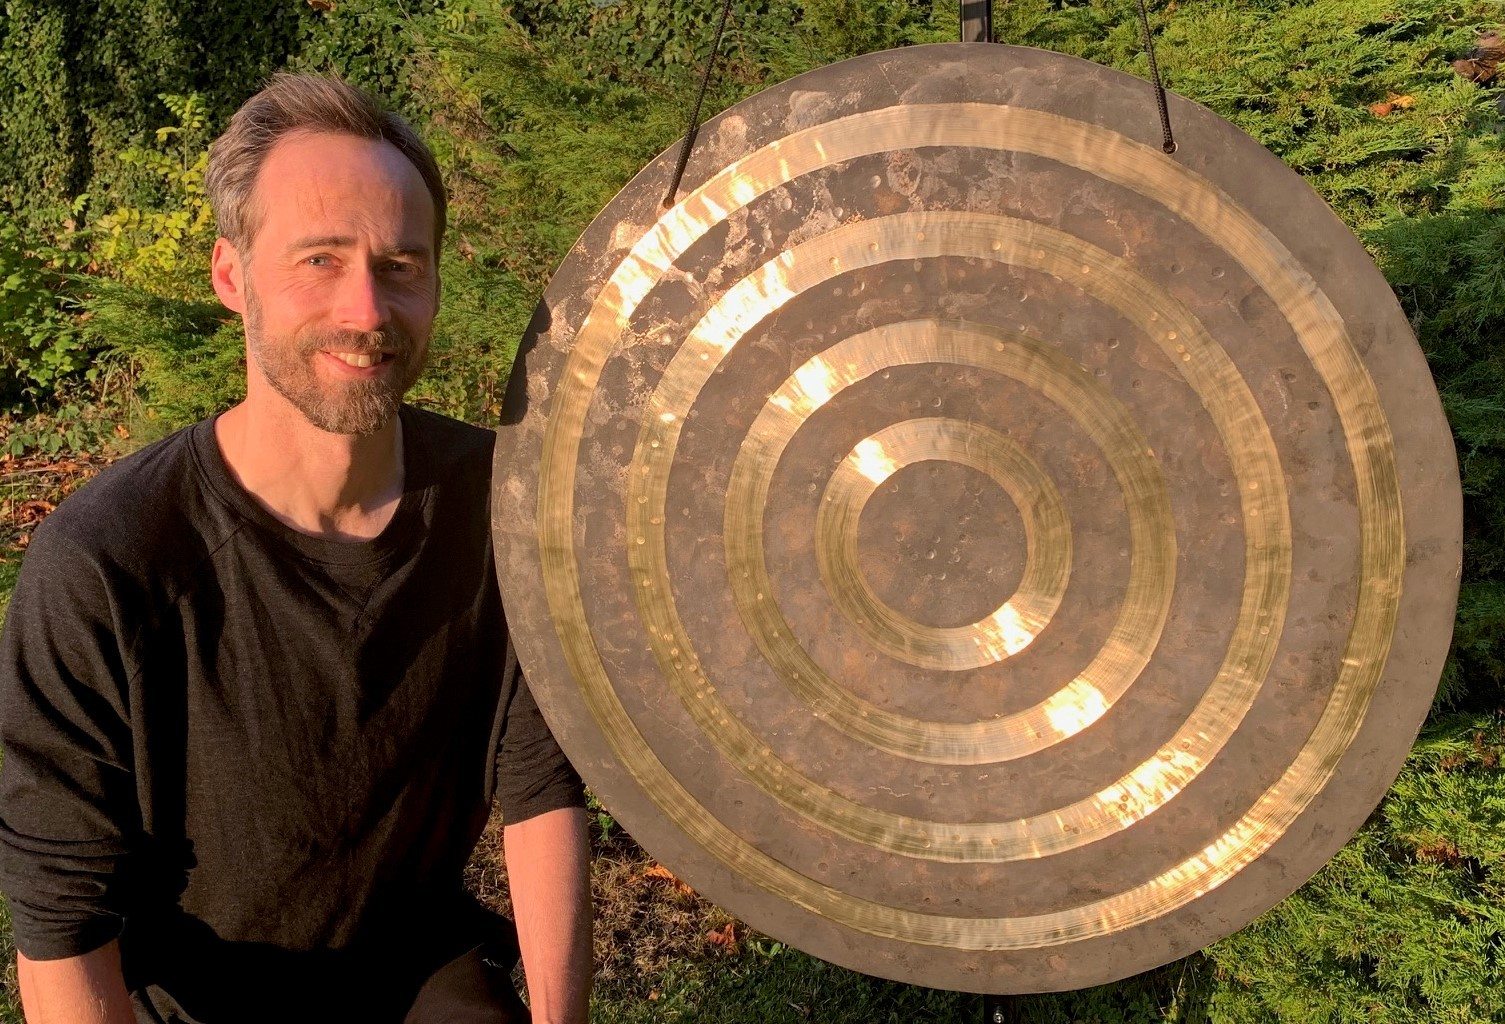 Sound Gong baths at YogaSpace Yorkshire